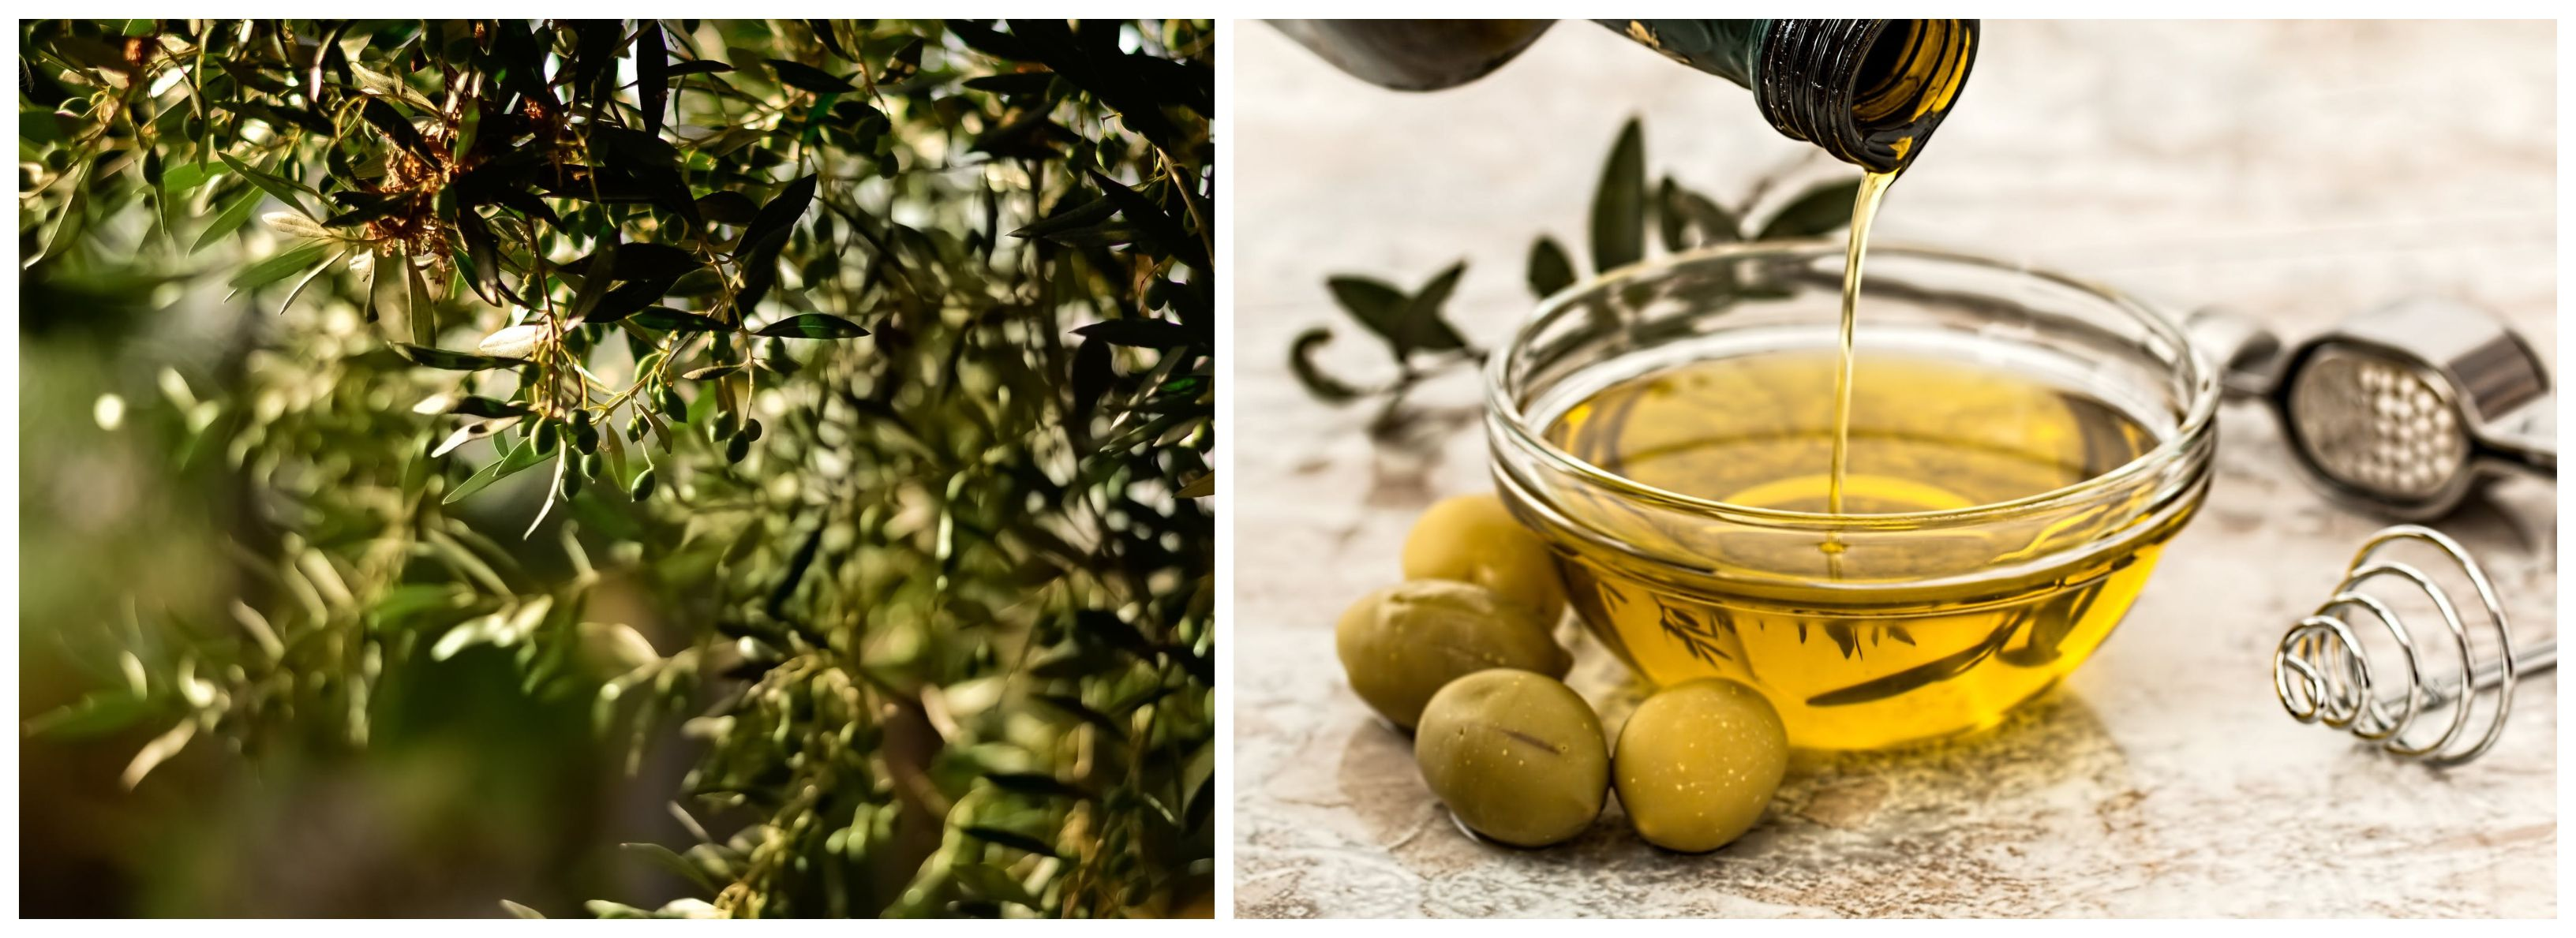 Croatian olive oil